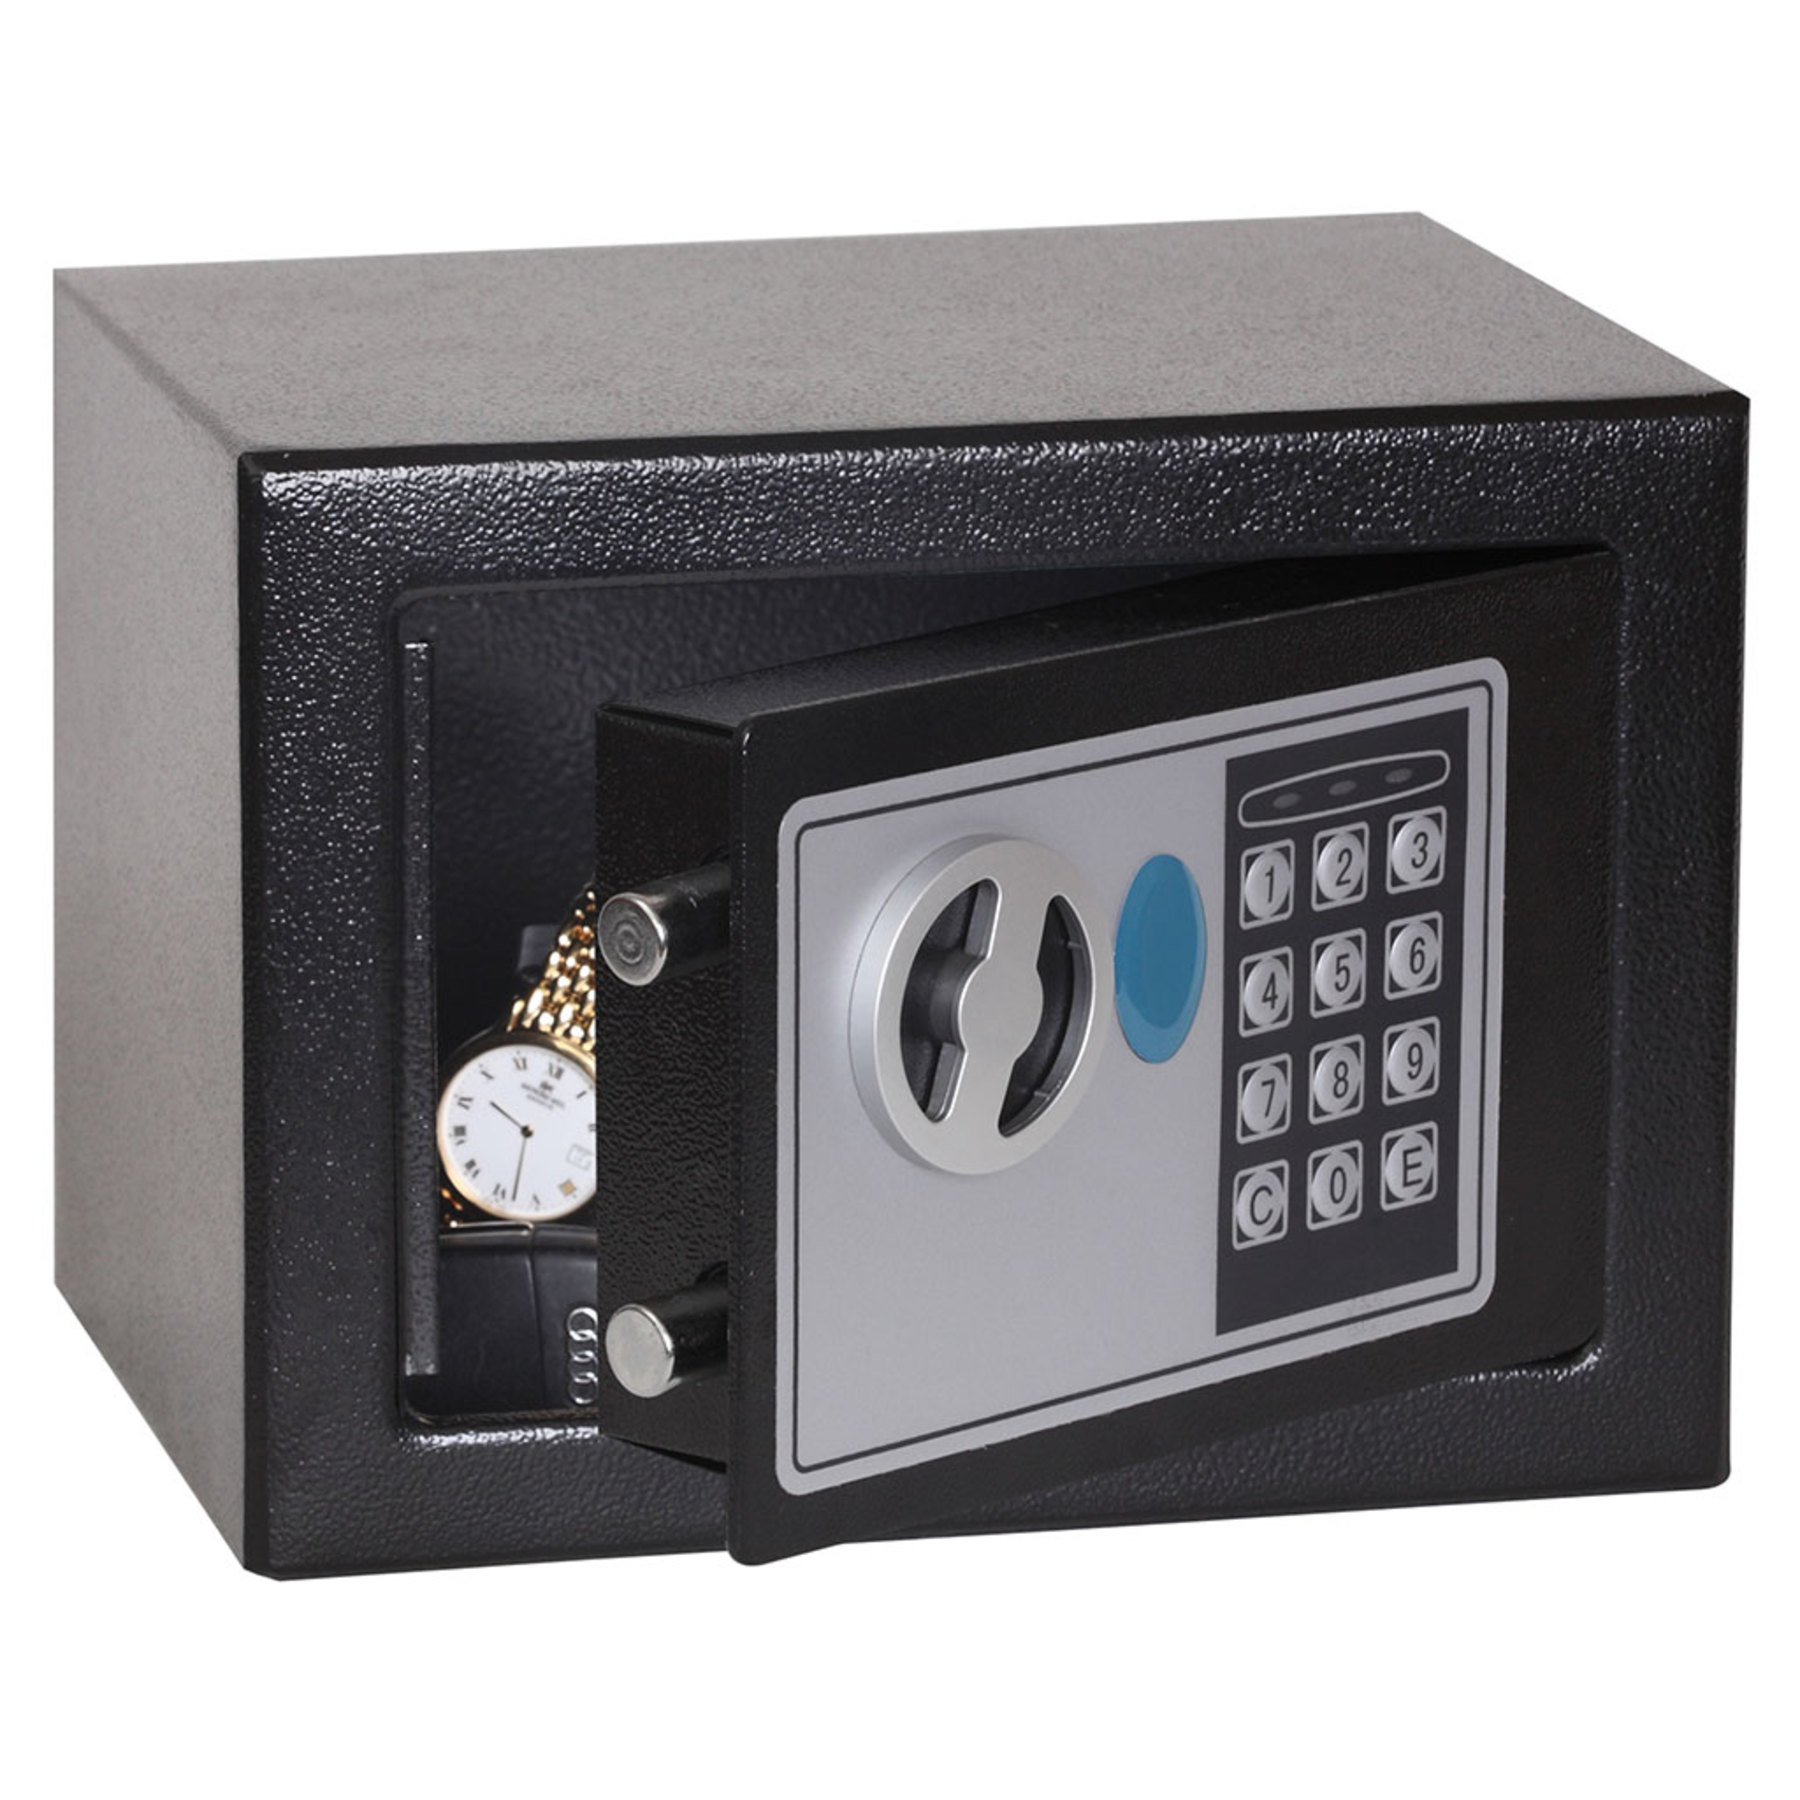 Compact Office. Phoenix Ss0721e Compact Home/office Safe Office